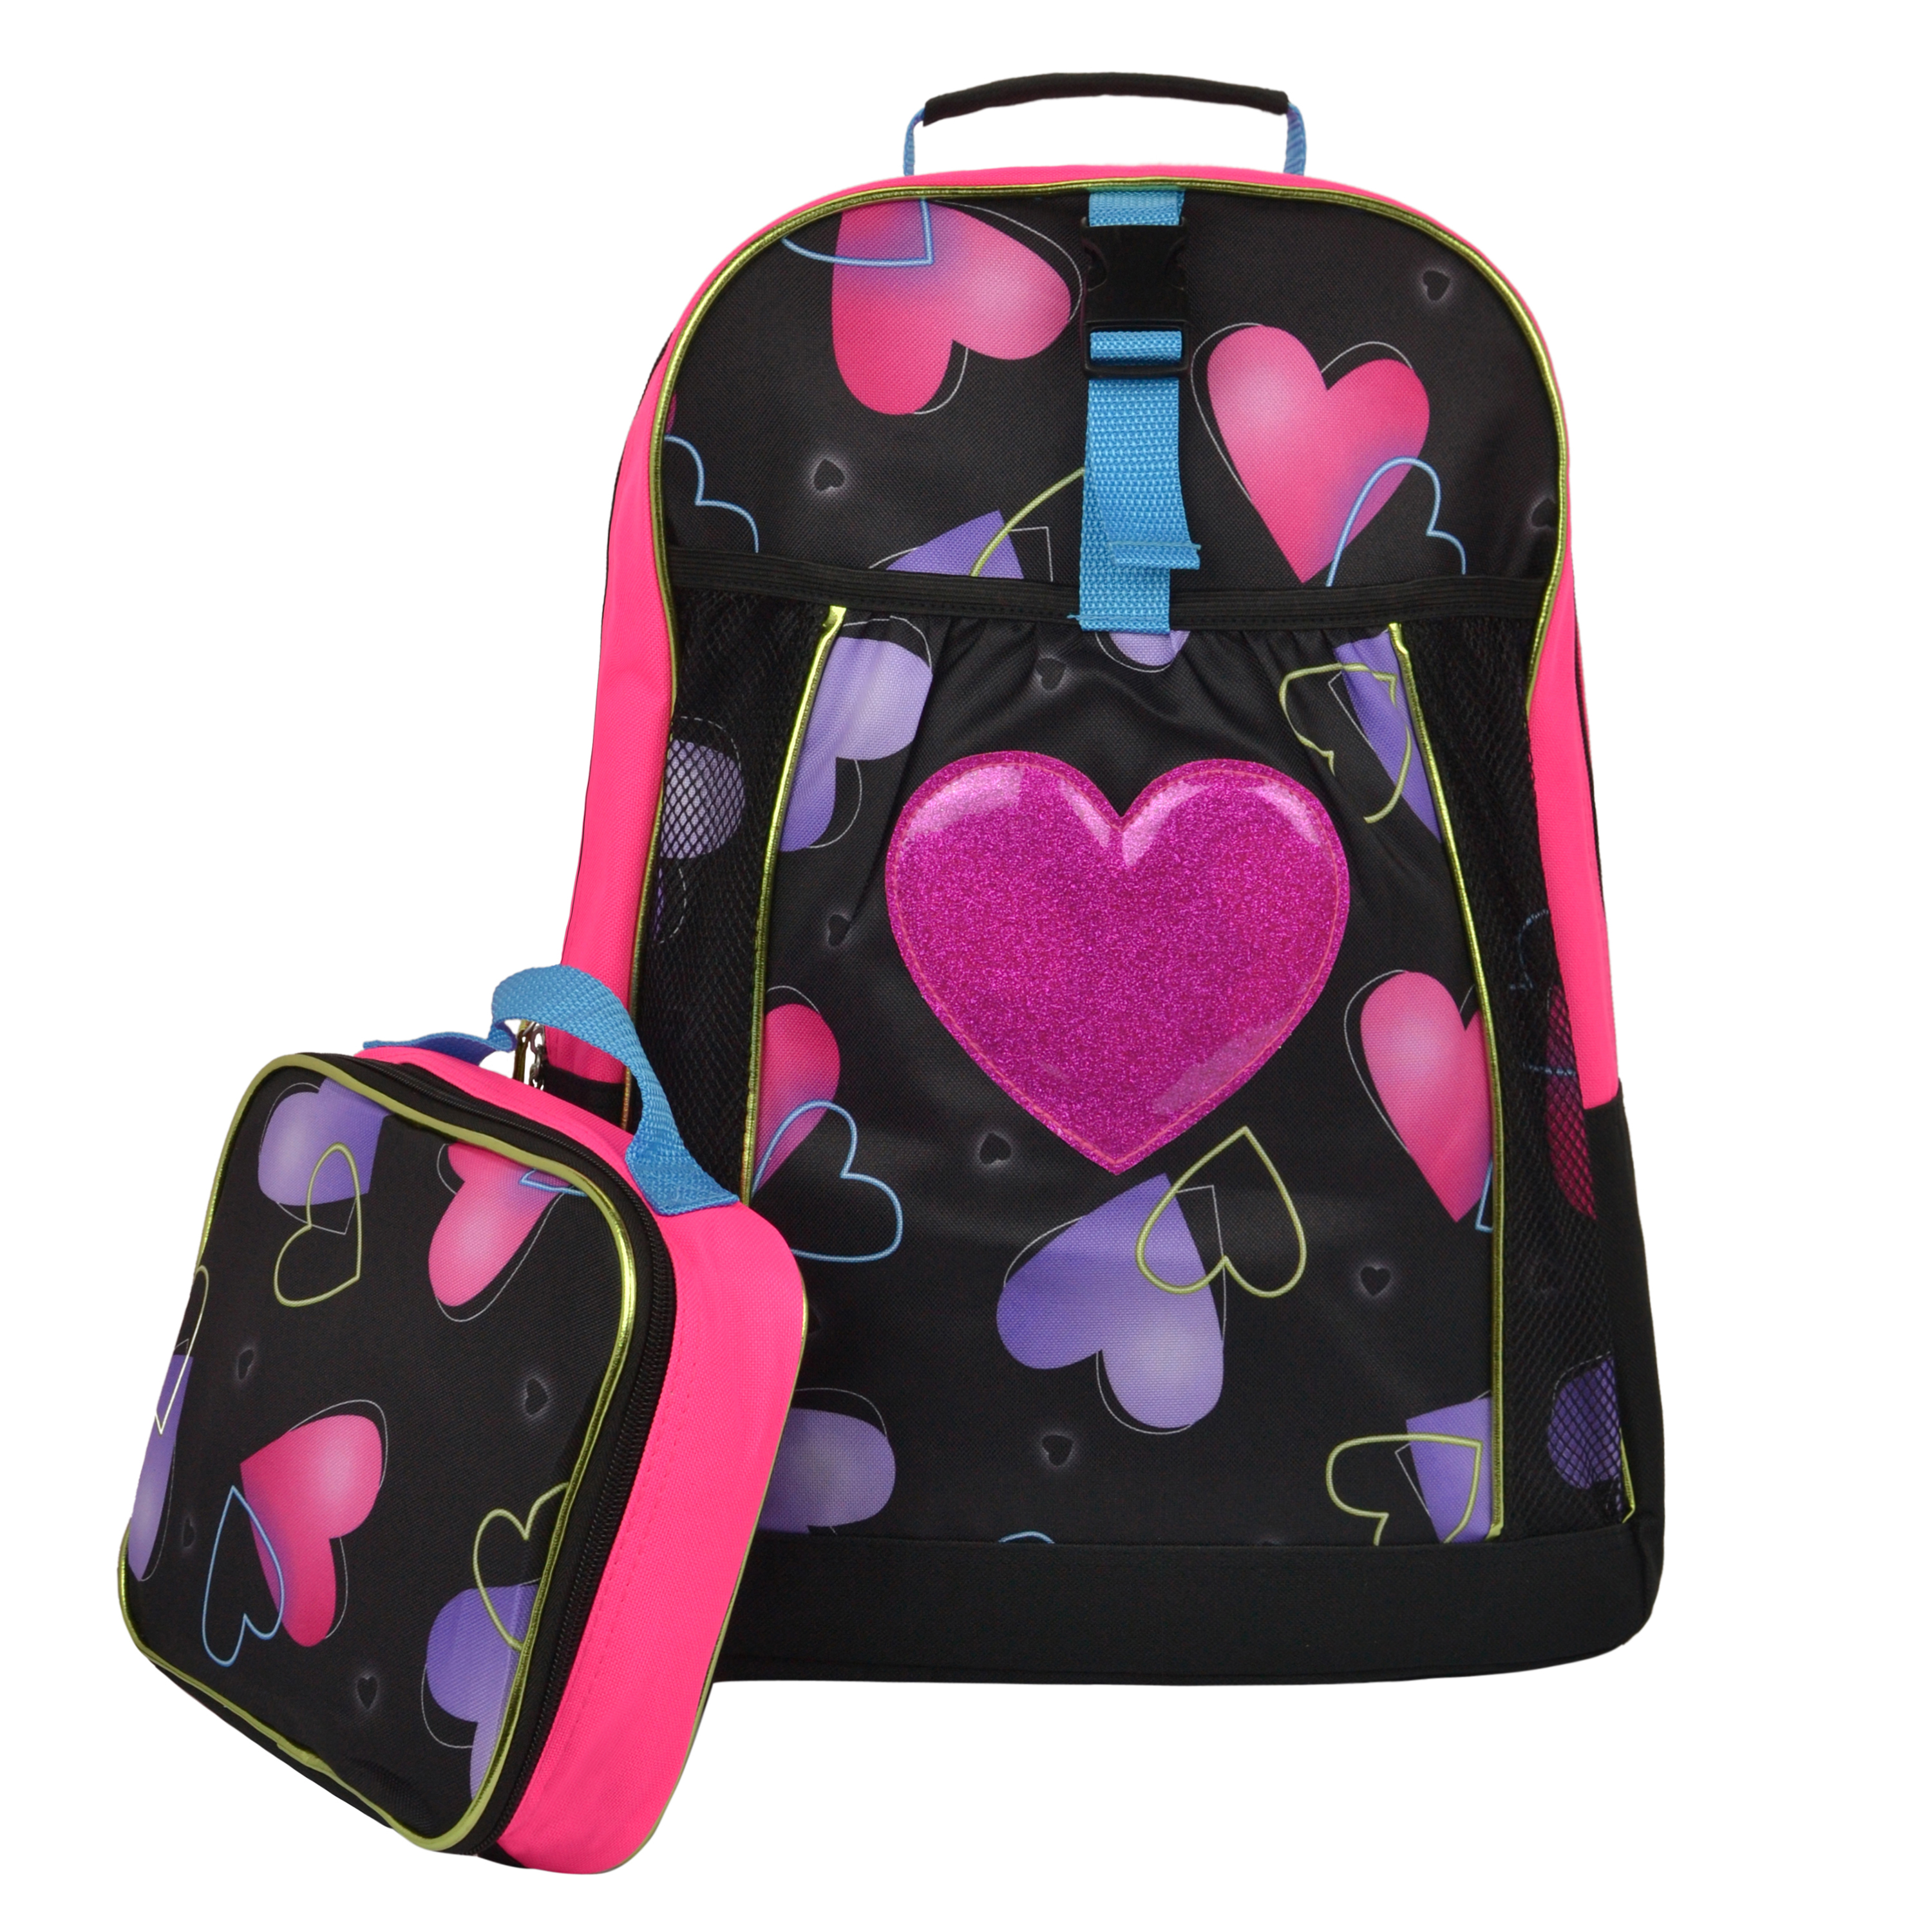 Pink Hearts Kids School Backpack with Lunch Bag